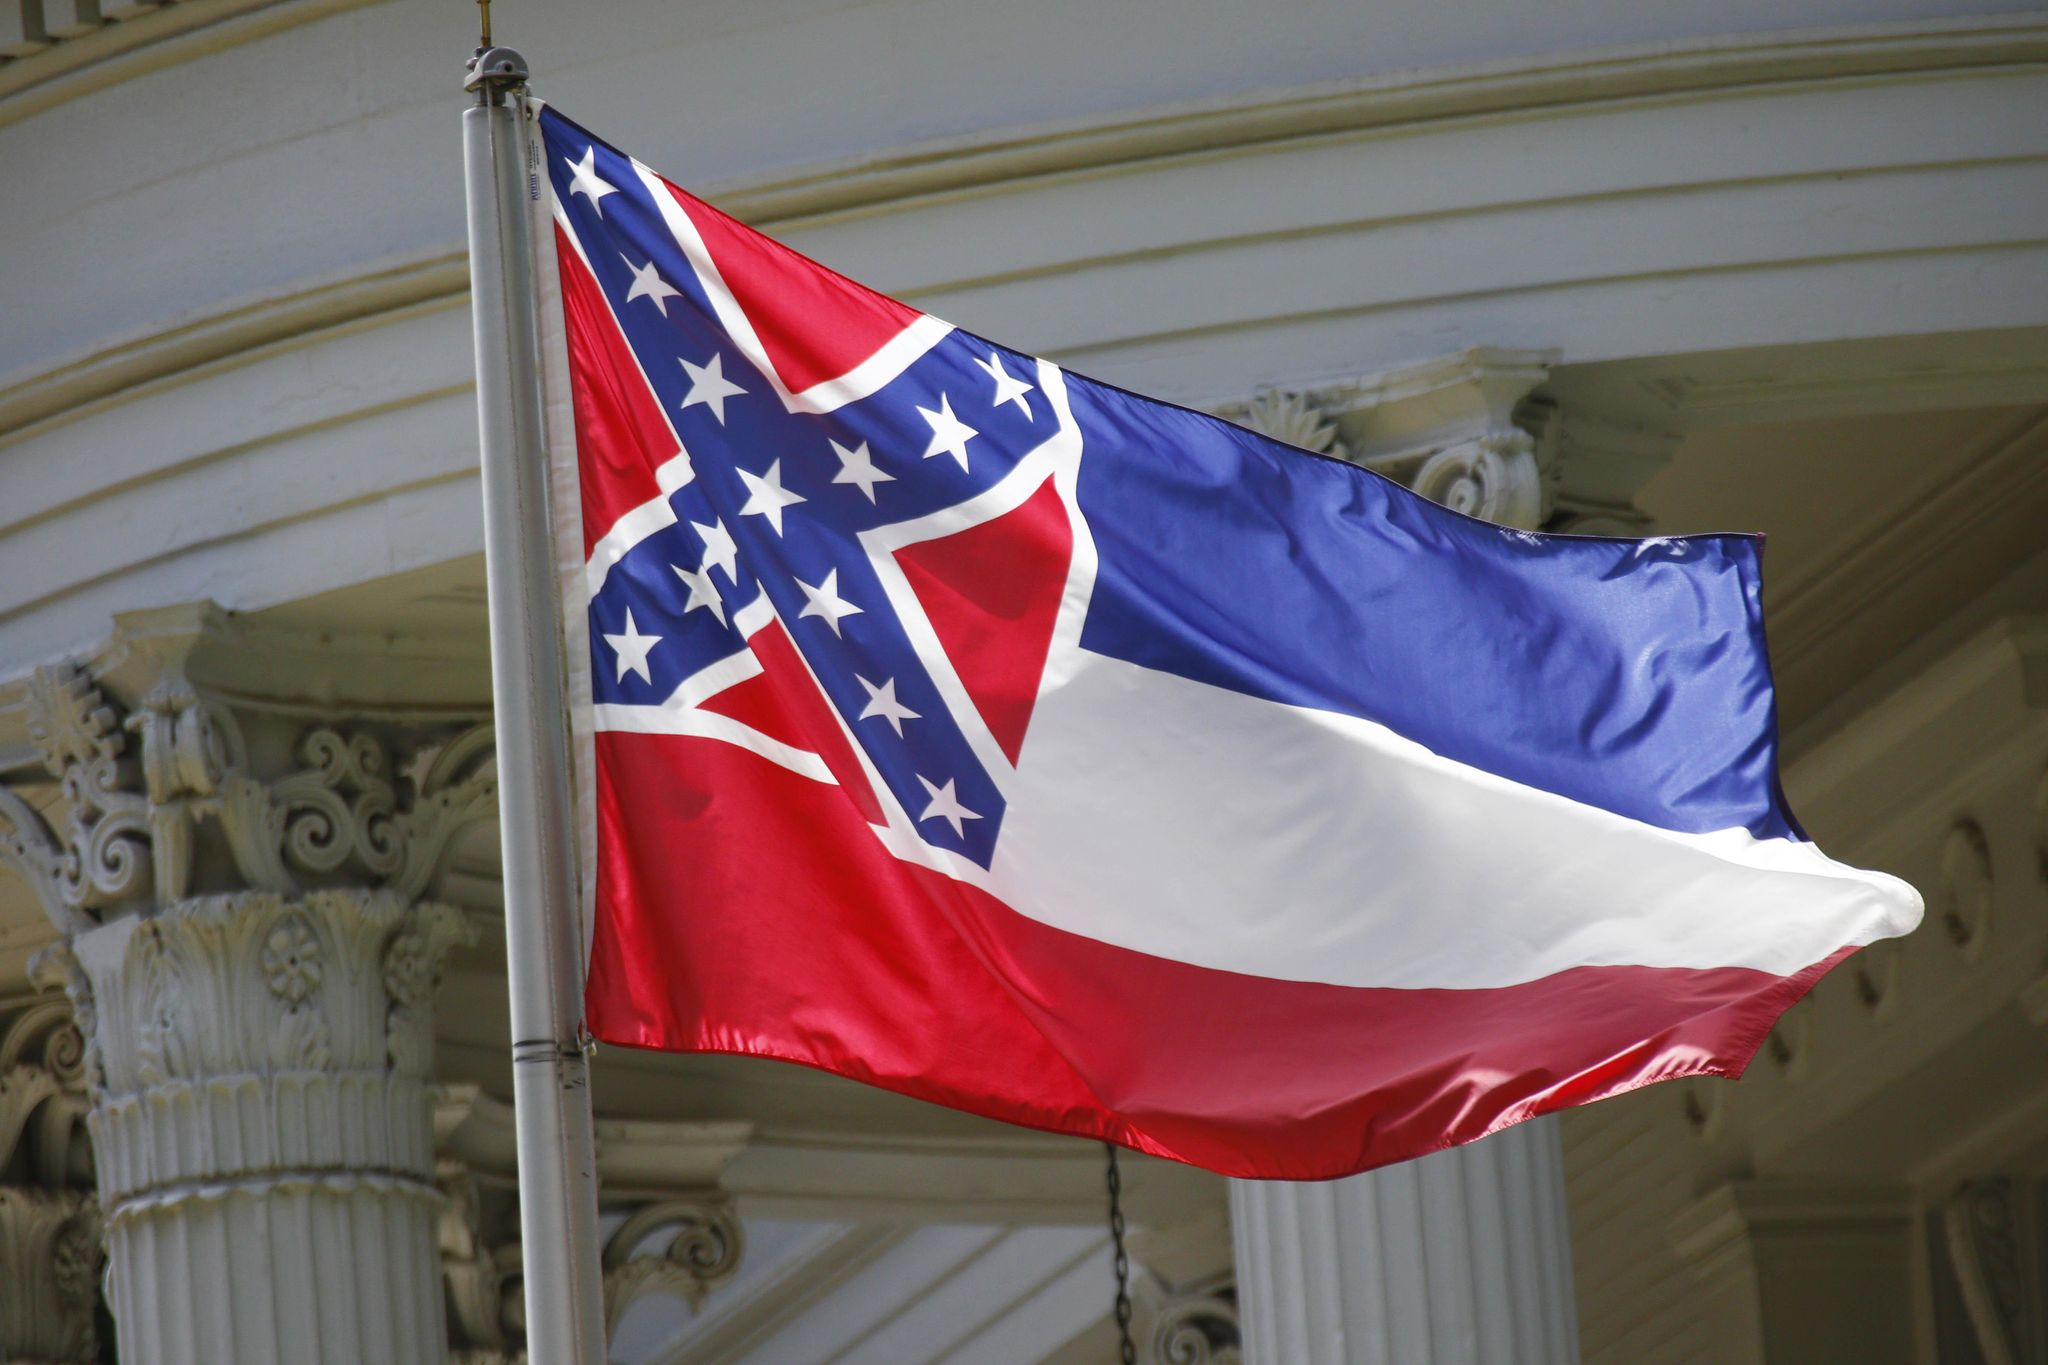 University of Mississippi issues warning on eve of Confederate rally on campus